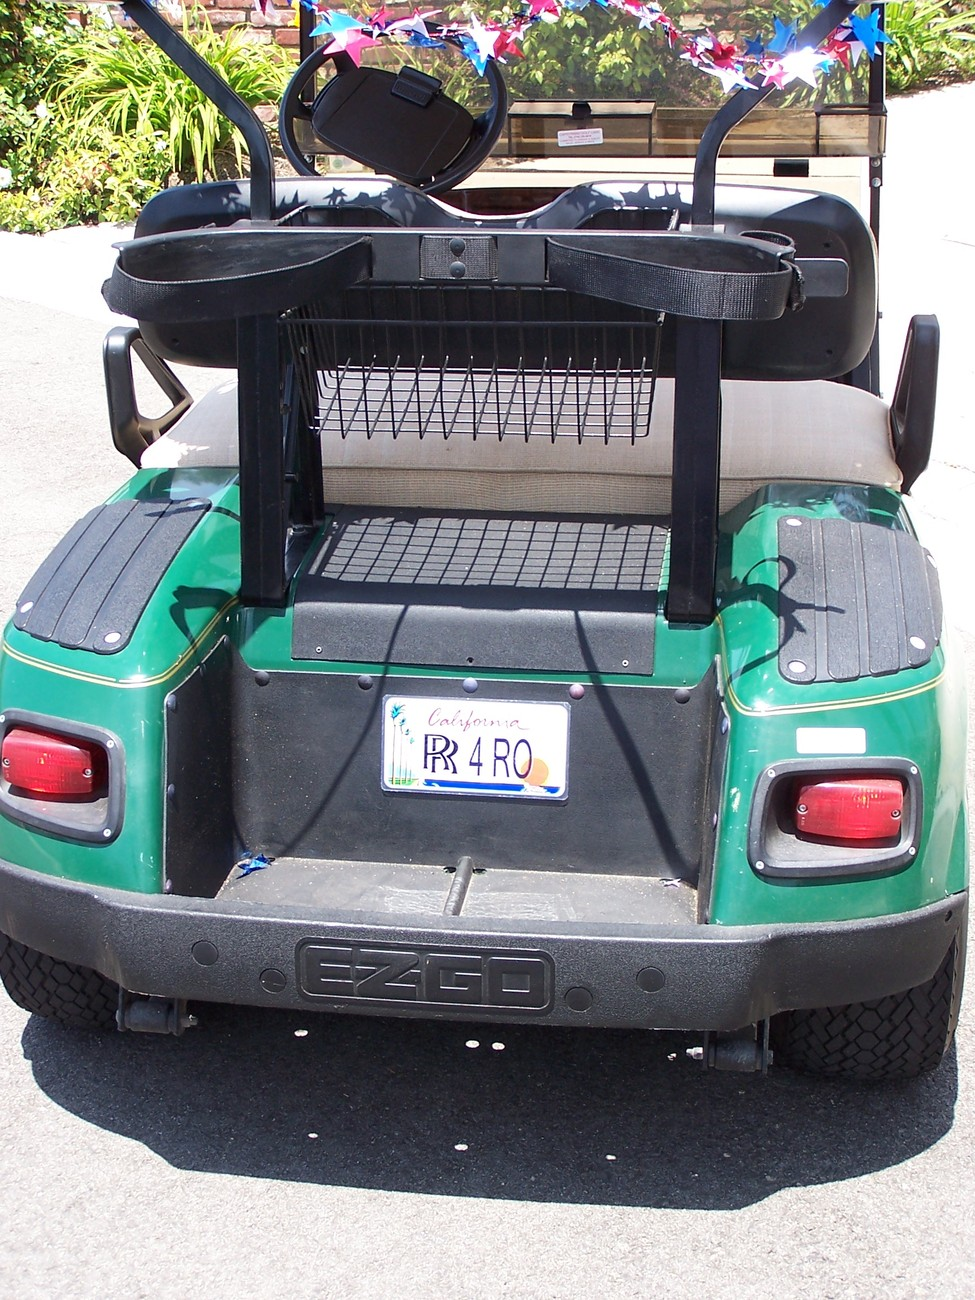 Custom Personalized Hawaii golf cart, mobility scooter, go cart license plate